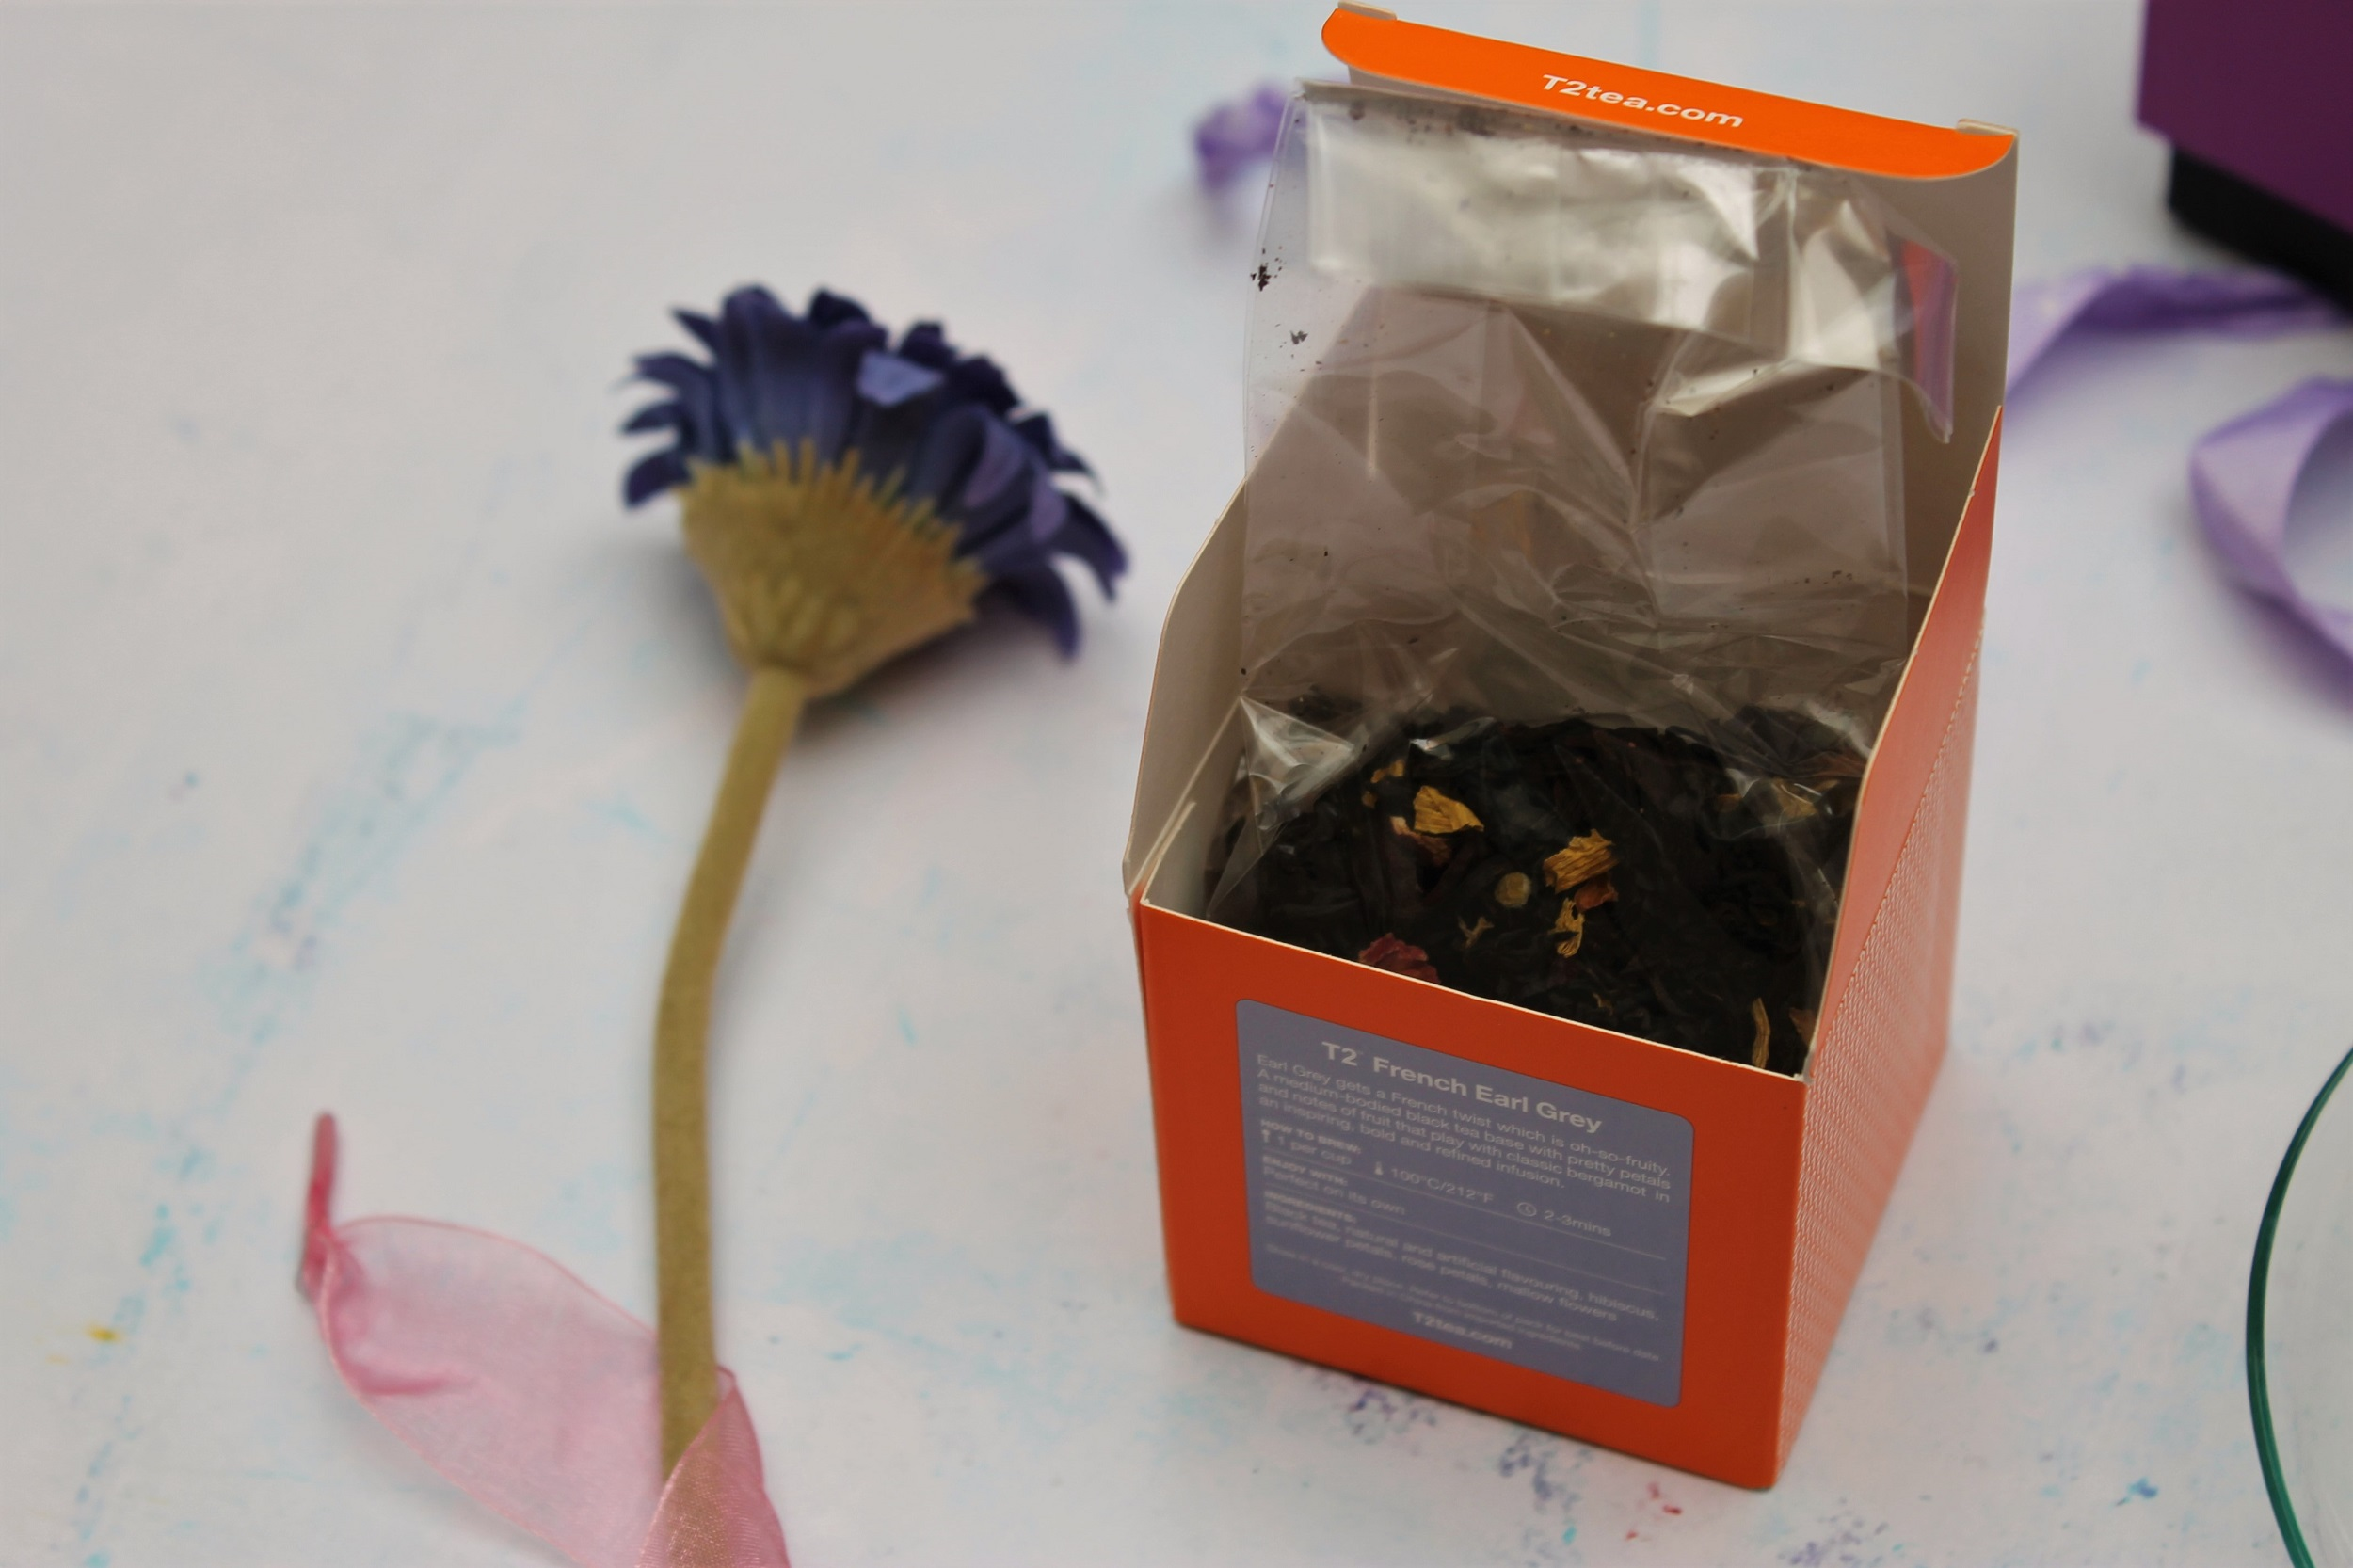 t2 loose french earl grey